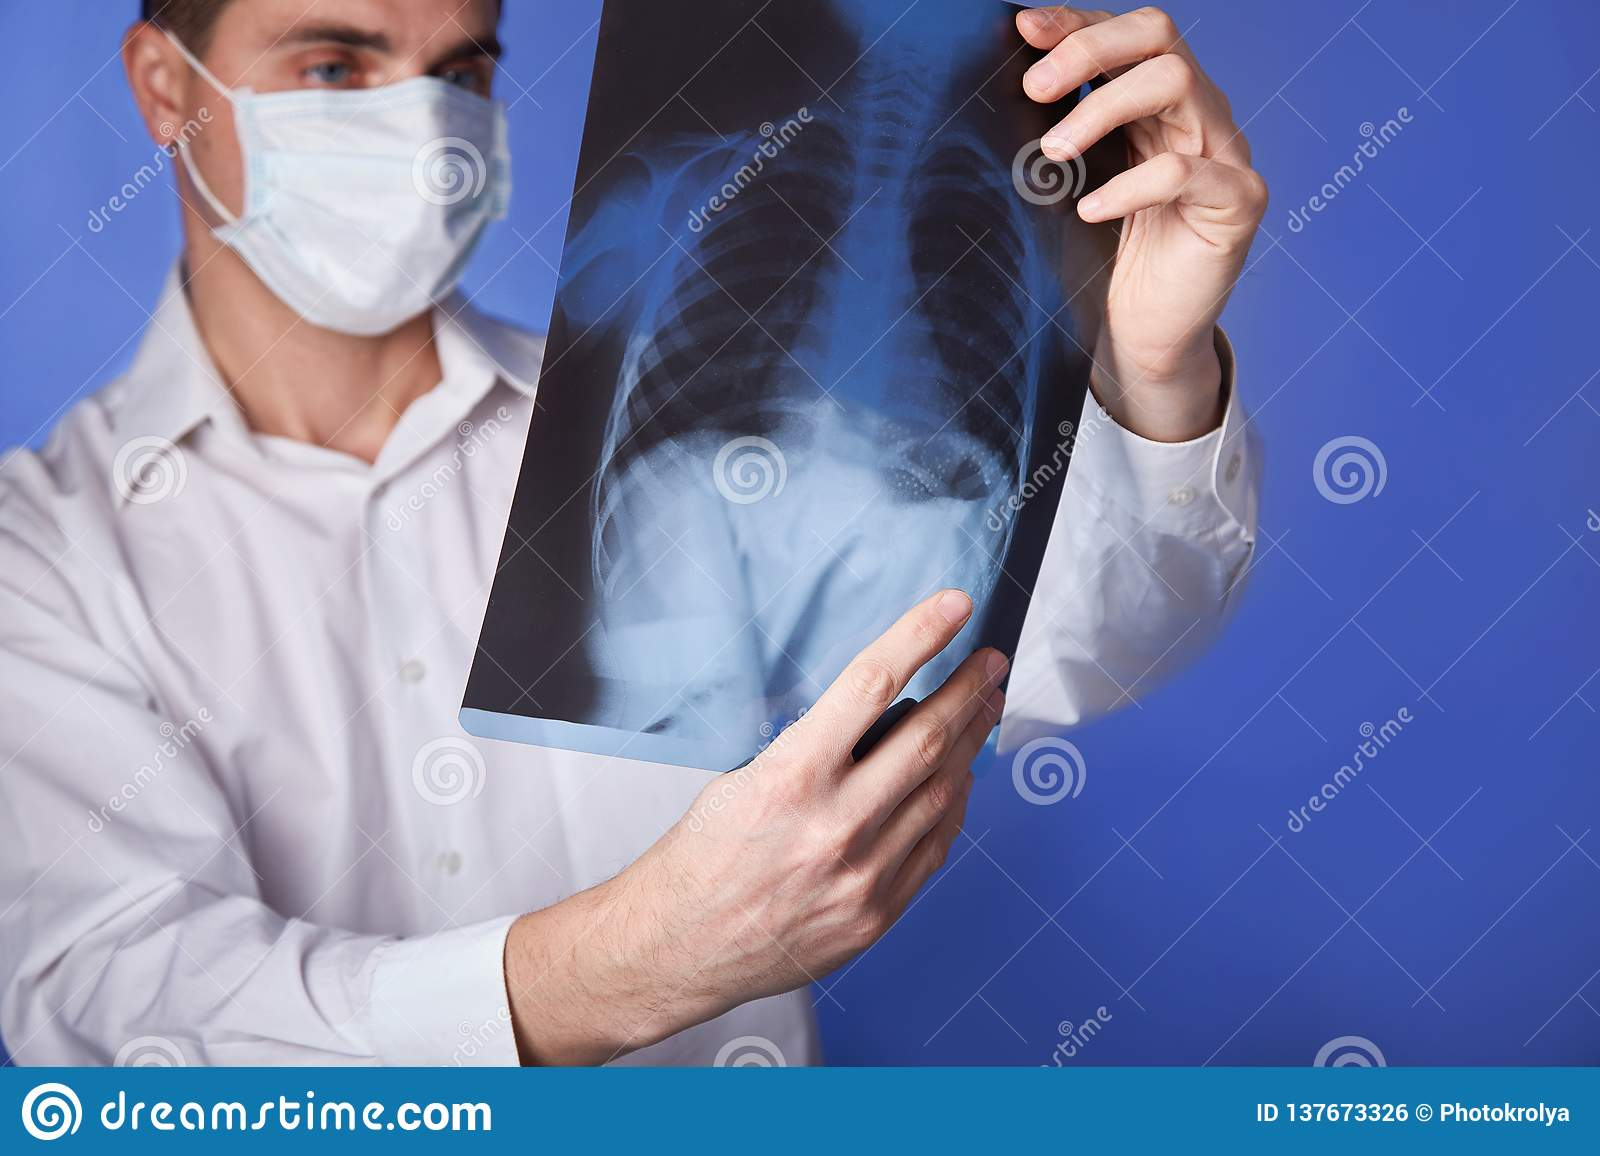 Male doctor in mask and white coat holding x-ray or roentgen of lungs, fluorography, image on blue background